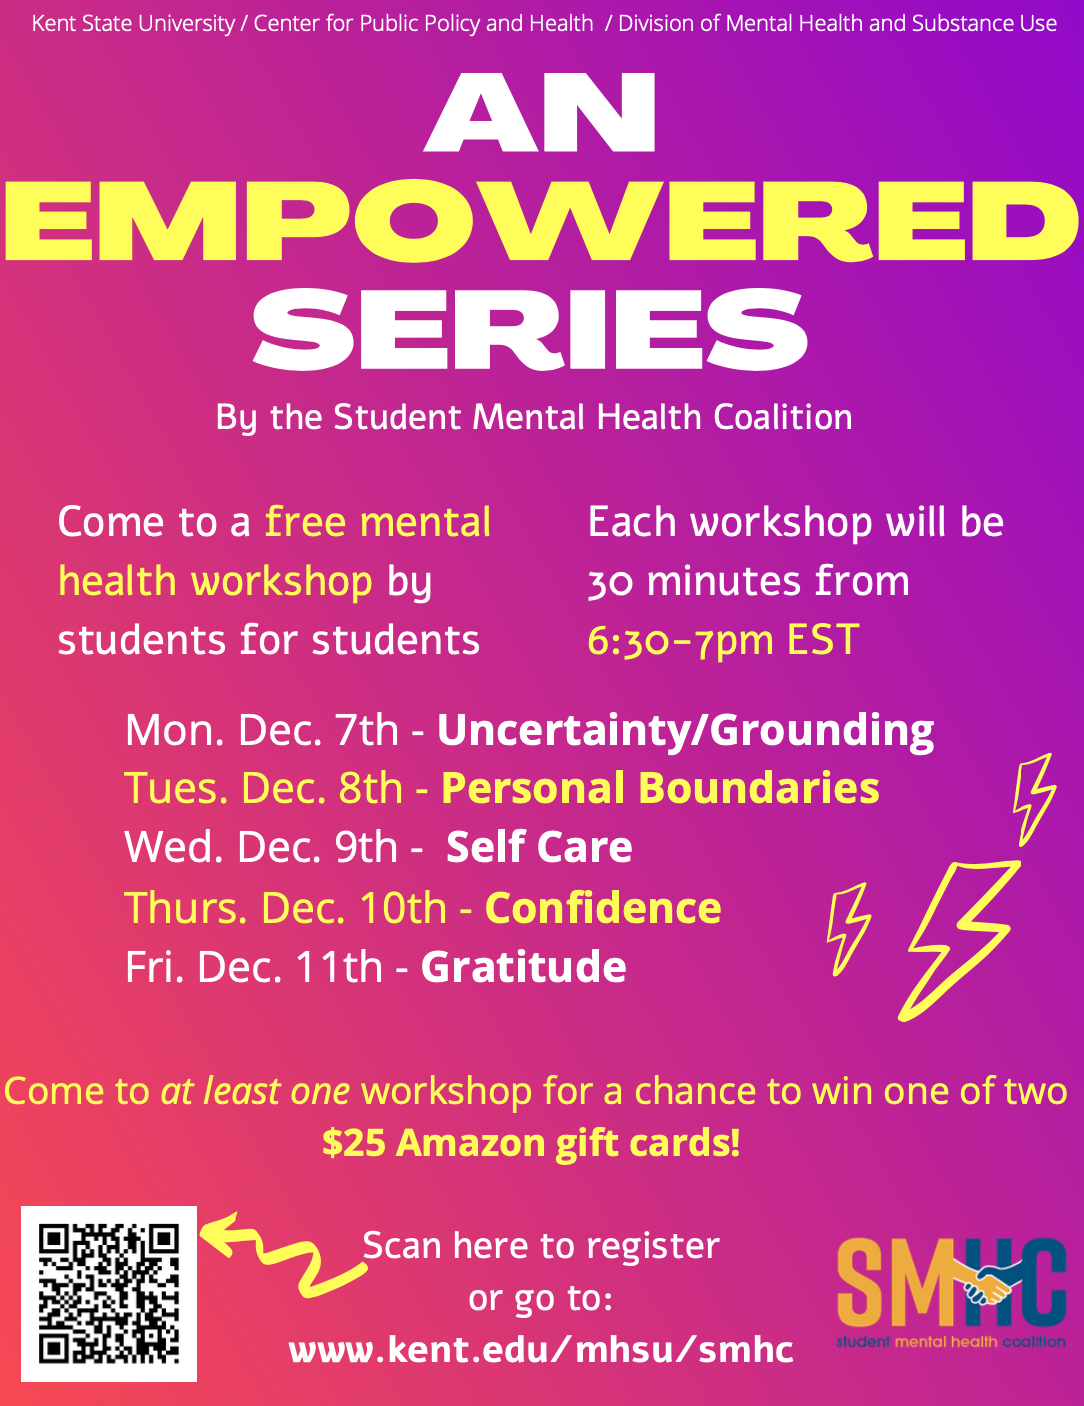 Empowered Series graphic, see info